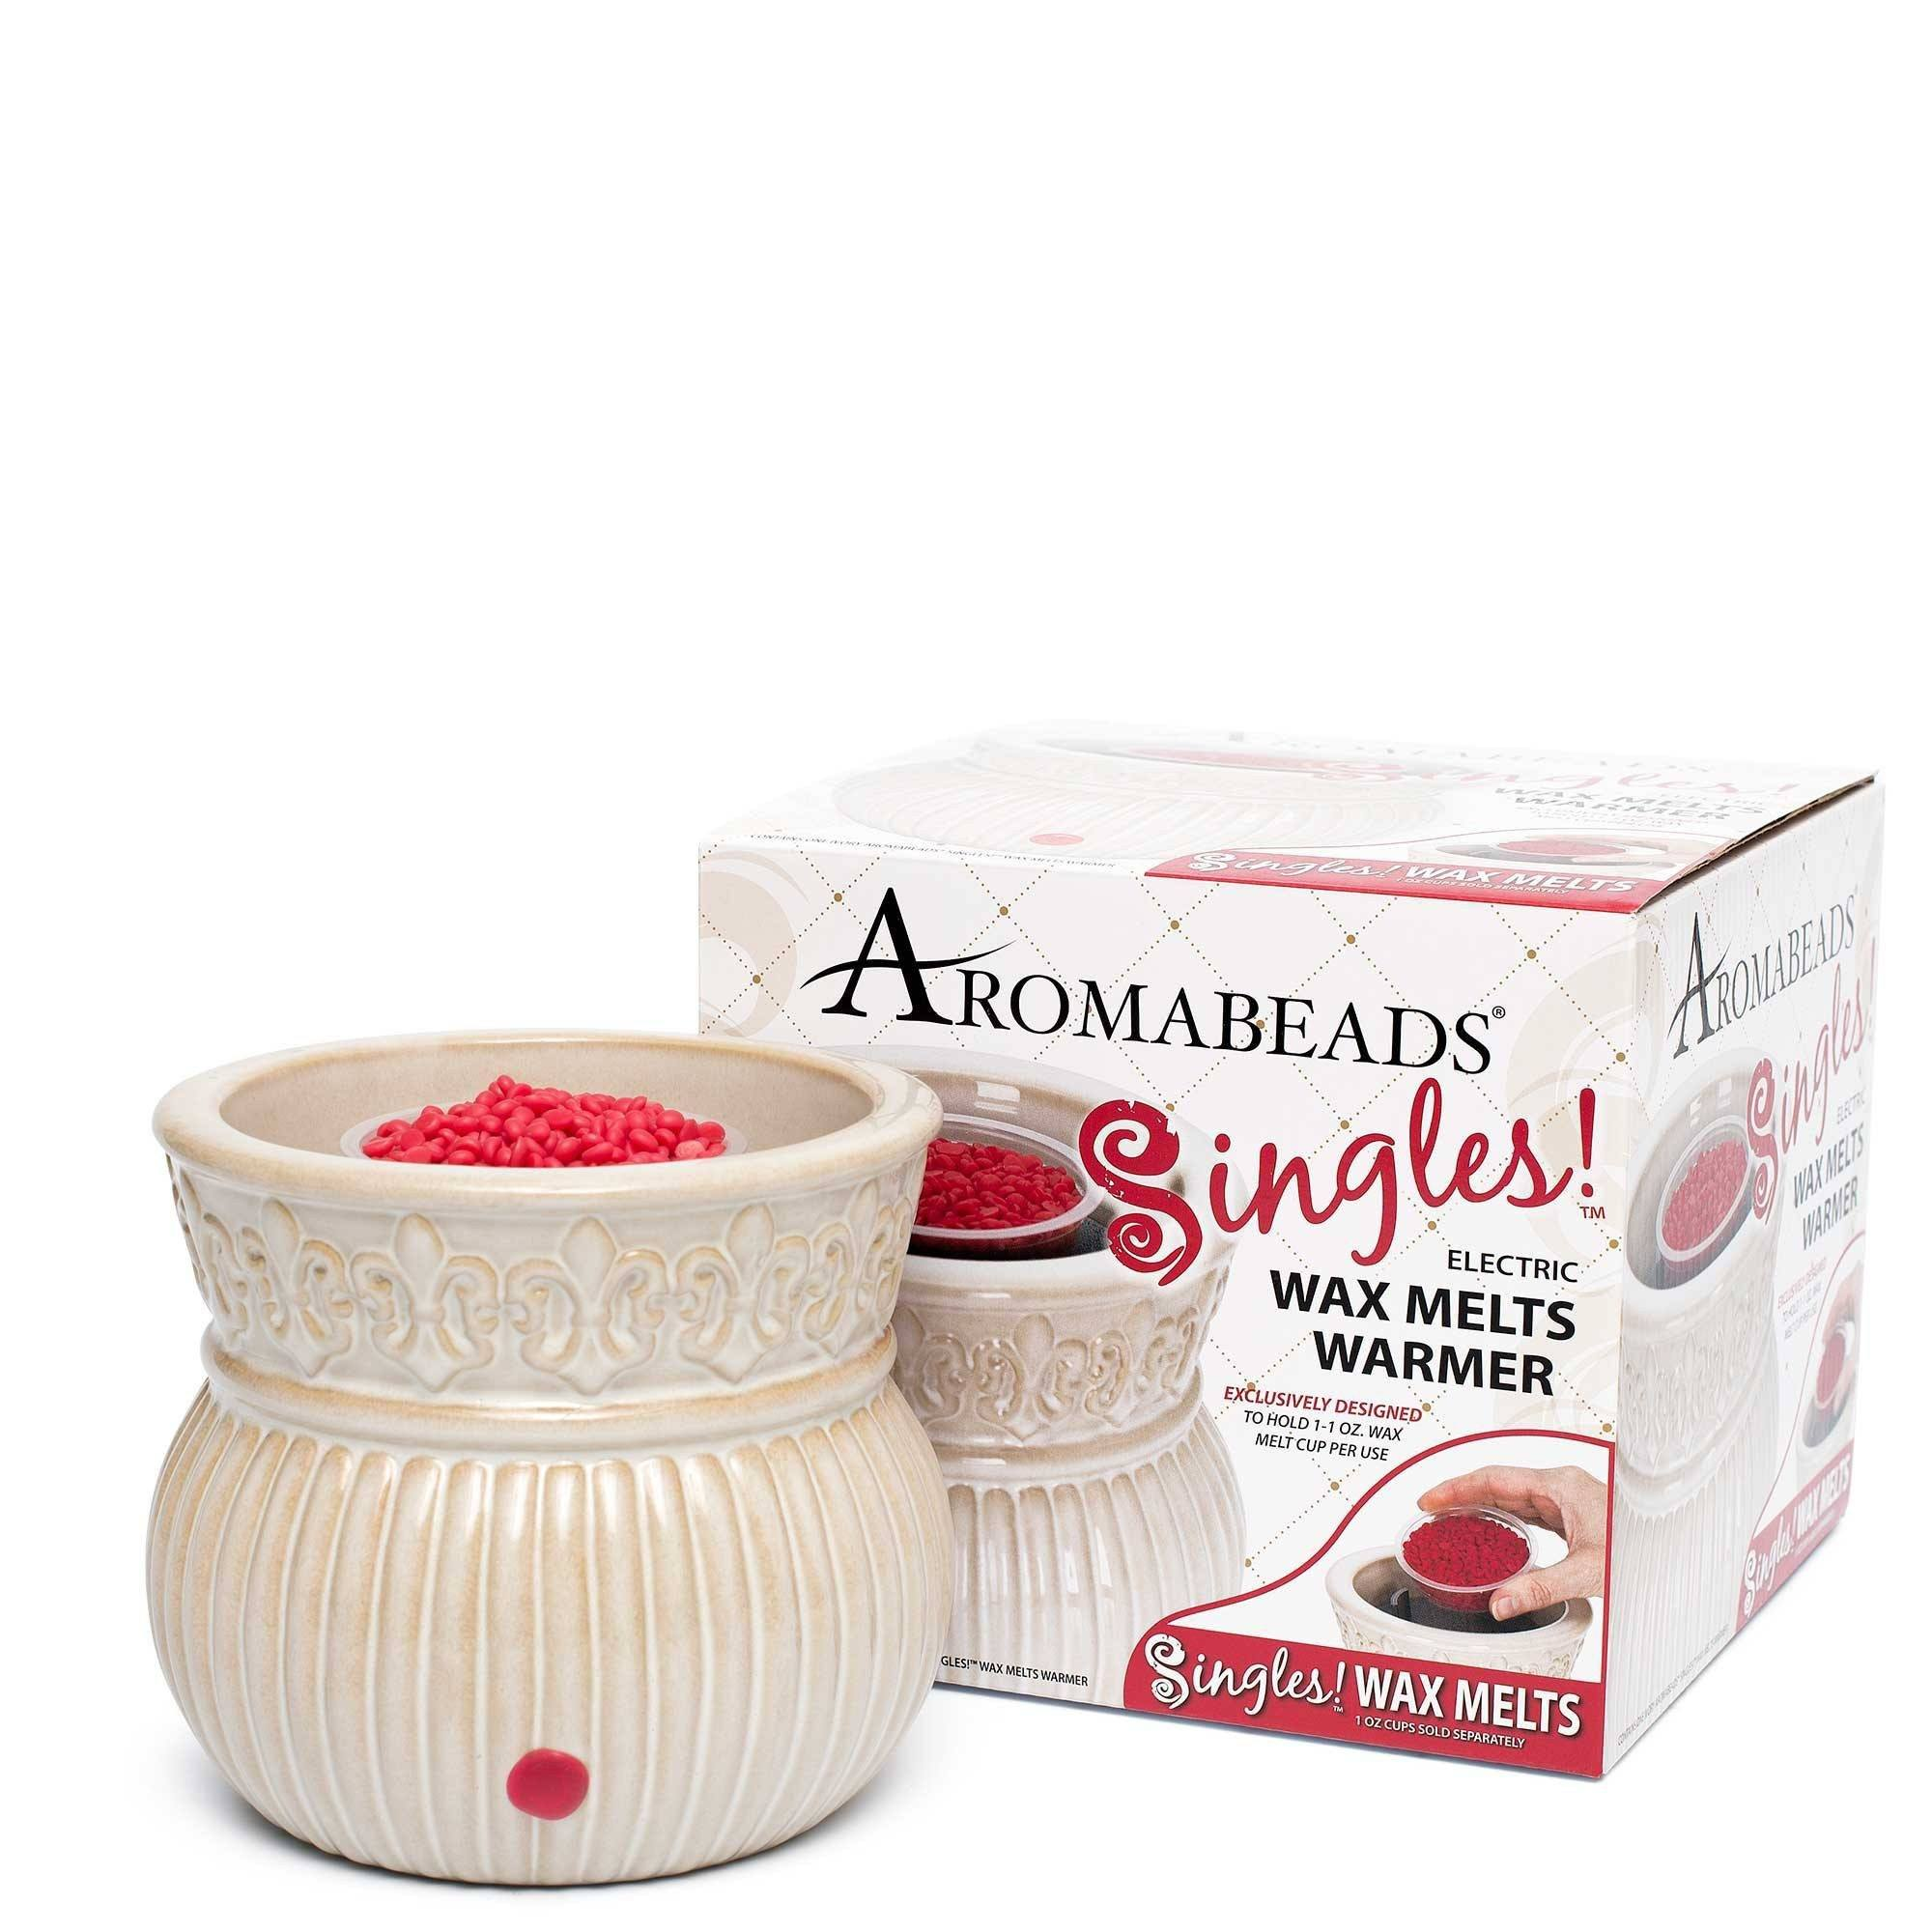 Aromabeads Singles Carmine Rose Wax Melts 10 pack - Candlemart.com